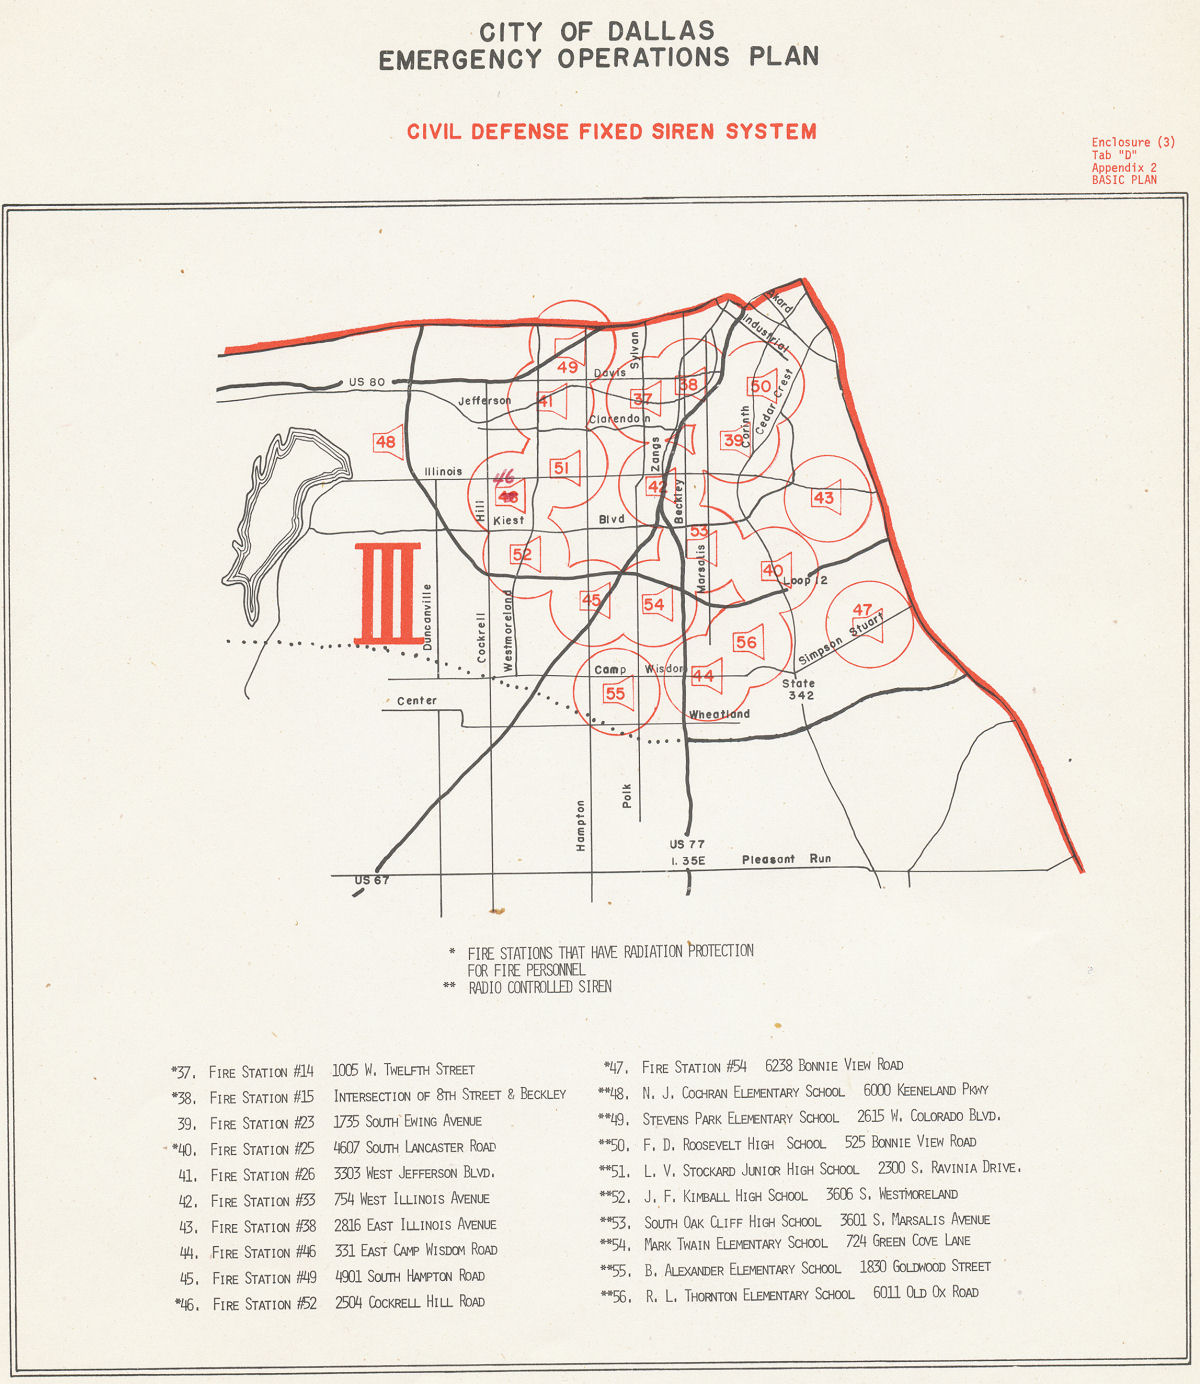 Fire Station Siren Wiring Diagram Trusted Diagrams Civil Defense Museum Warning Sirens City Of Dallas Texas Chime